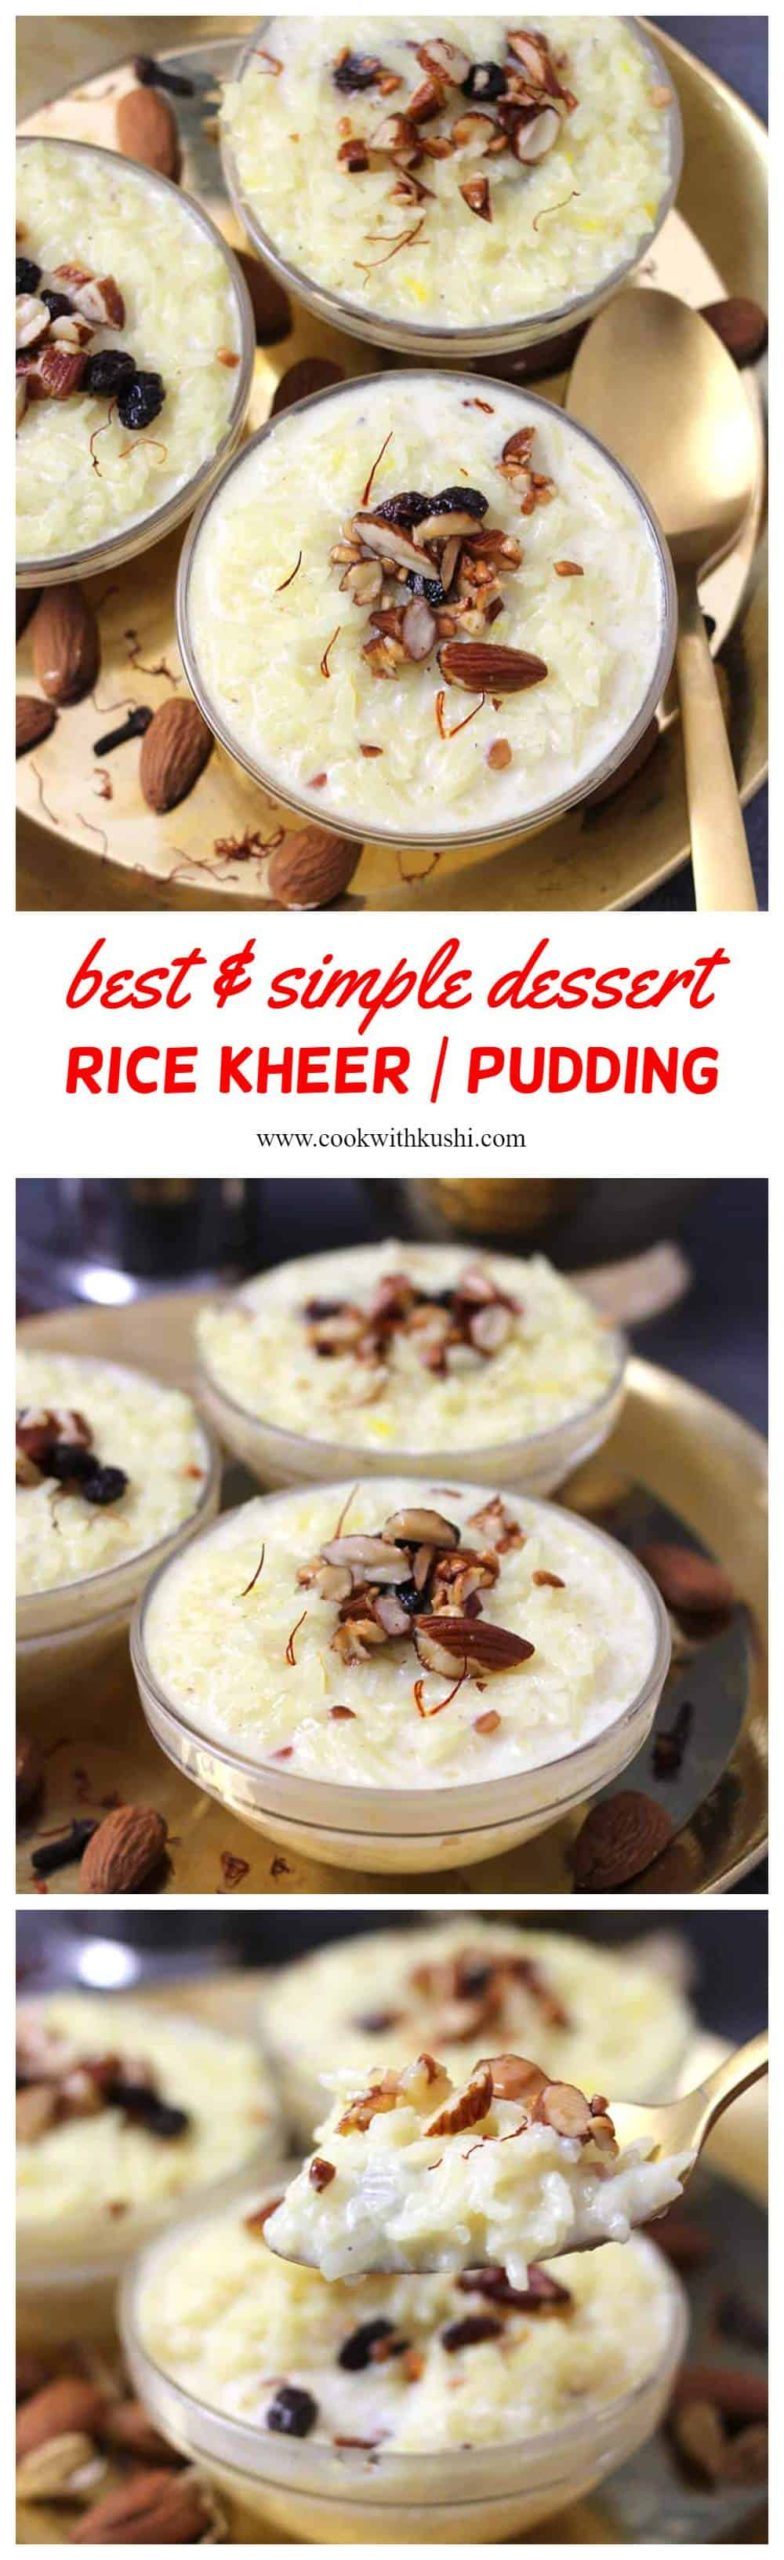 Doodhpak or Rice Kheer or Rice Pudding is a delightful and luxurious, traditional old fashioned Indian rice pudding prepared using rice, milk, nuts, and aromatic spices. This is dessert meant for the royals! #kheer #dessert #mithai #sweet #pudding #ricekheer #instantpotkheer #indiansweets #indiandesserts #doodhpak #pudding #veganpudding #Popularindianrecipes